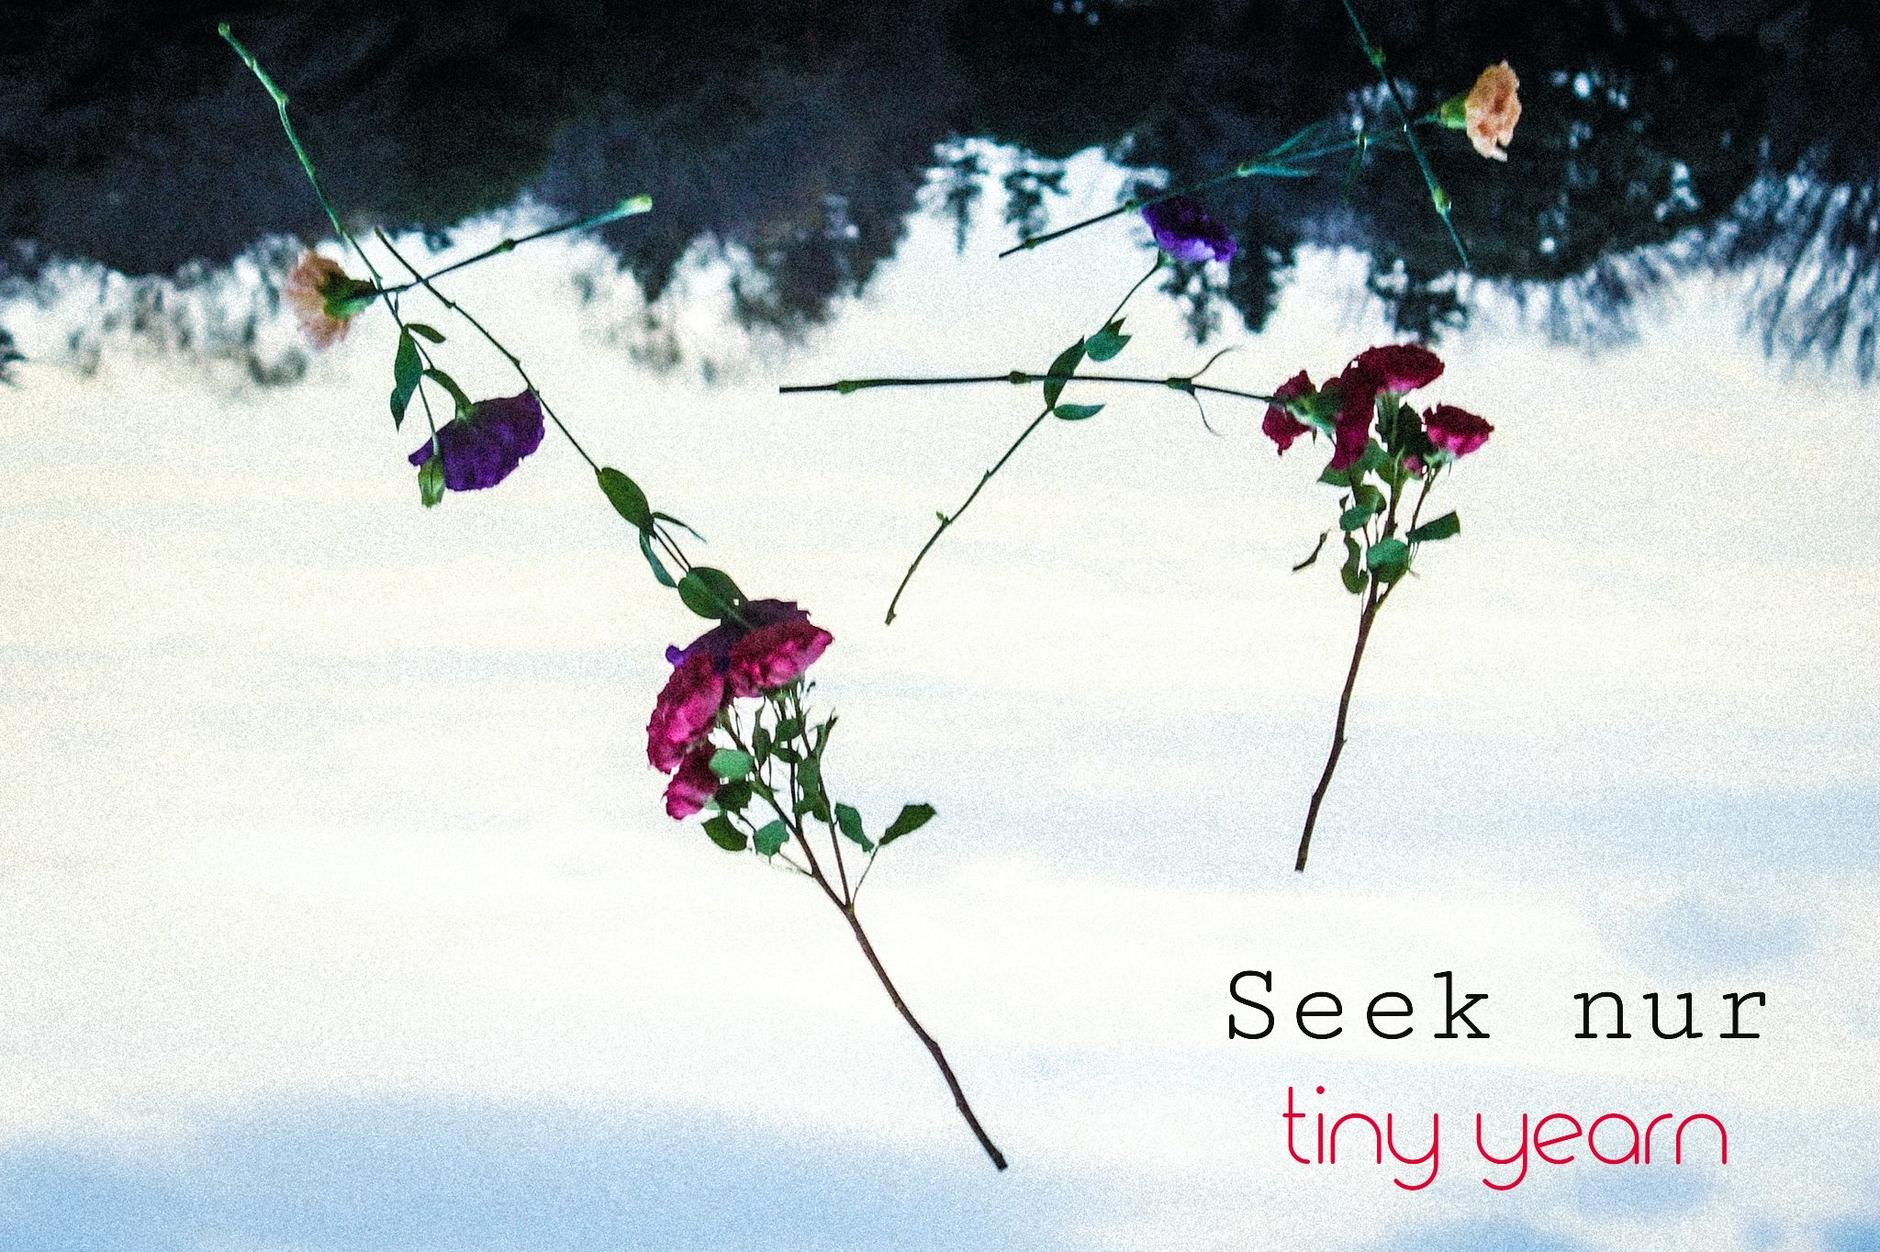 Seek nur・tiny yearn・・・vintage clothes